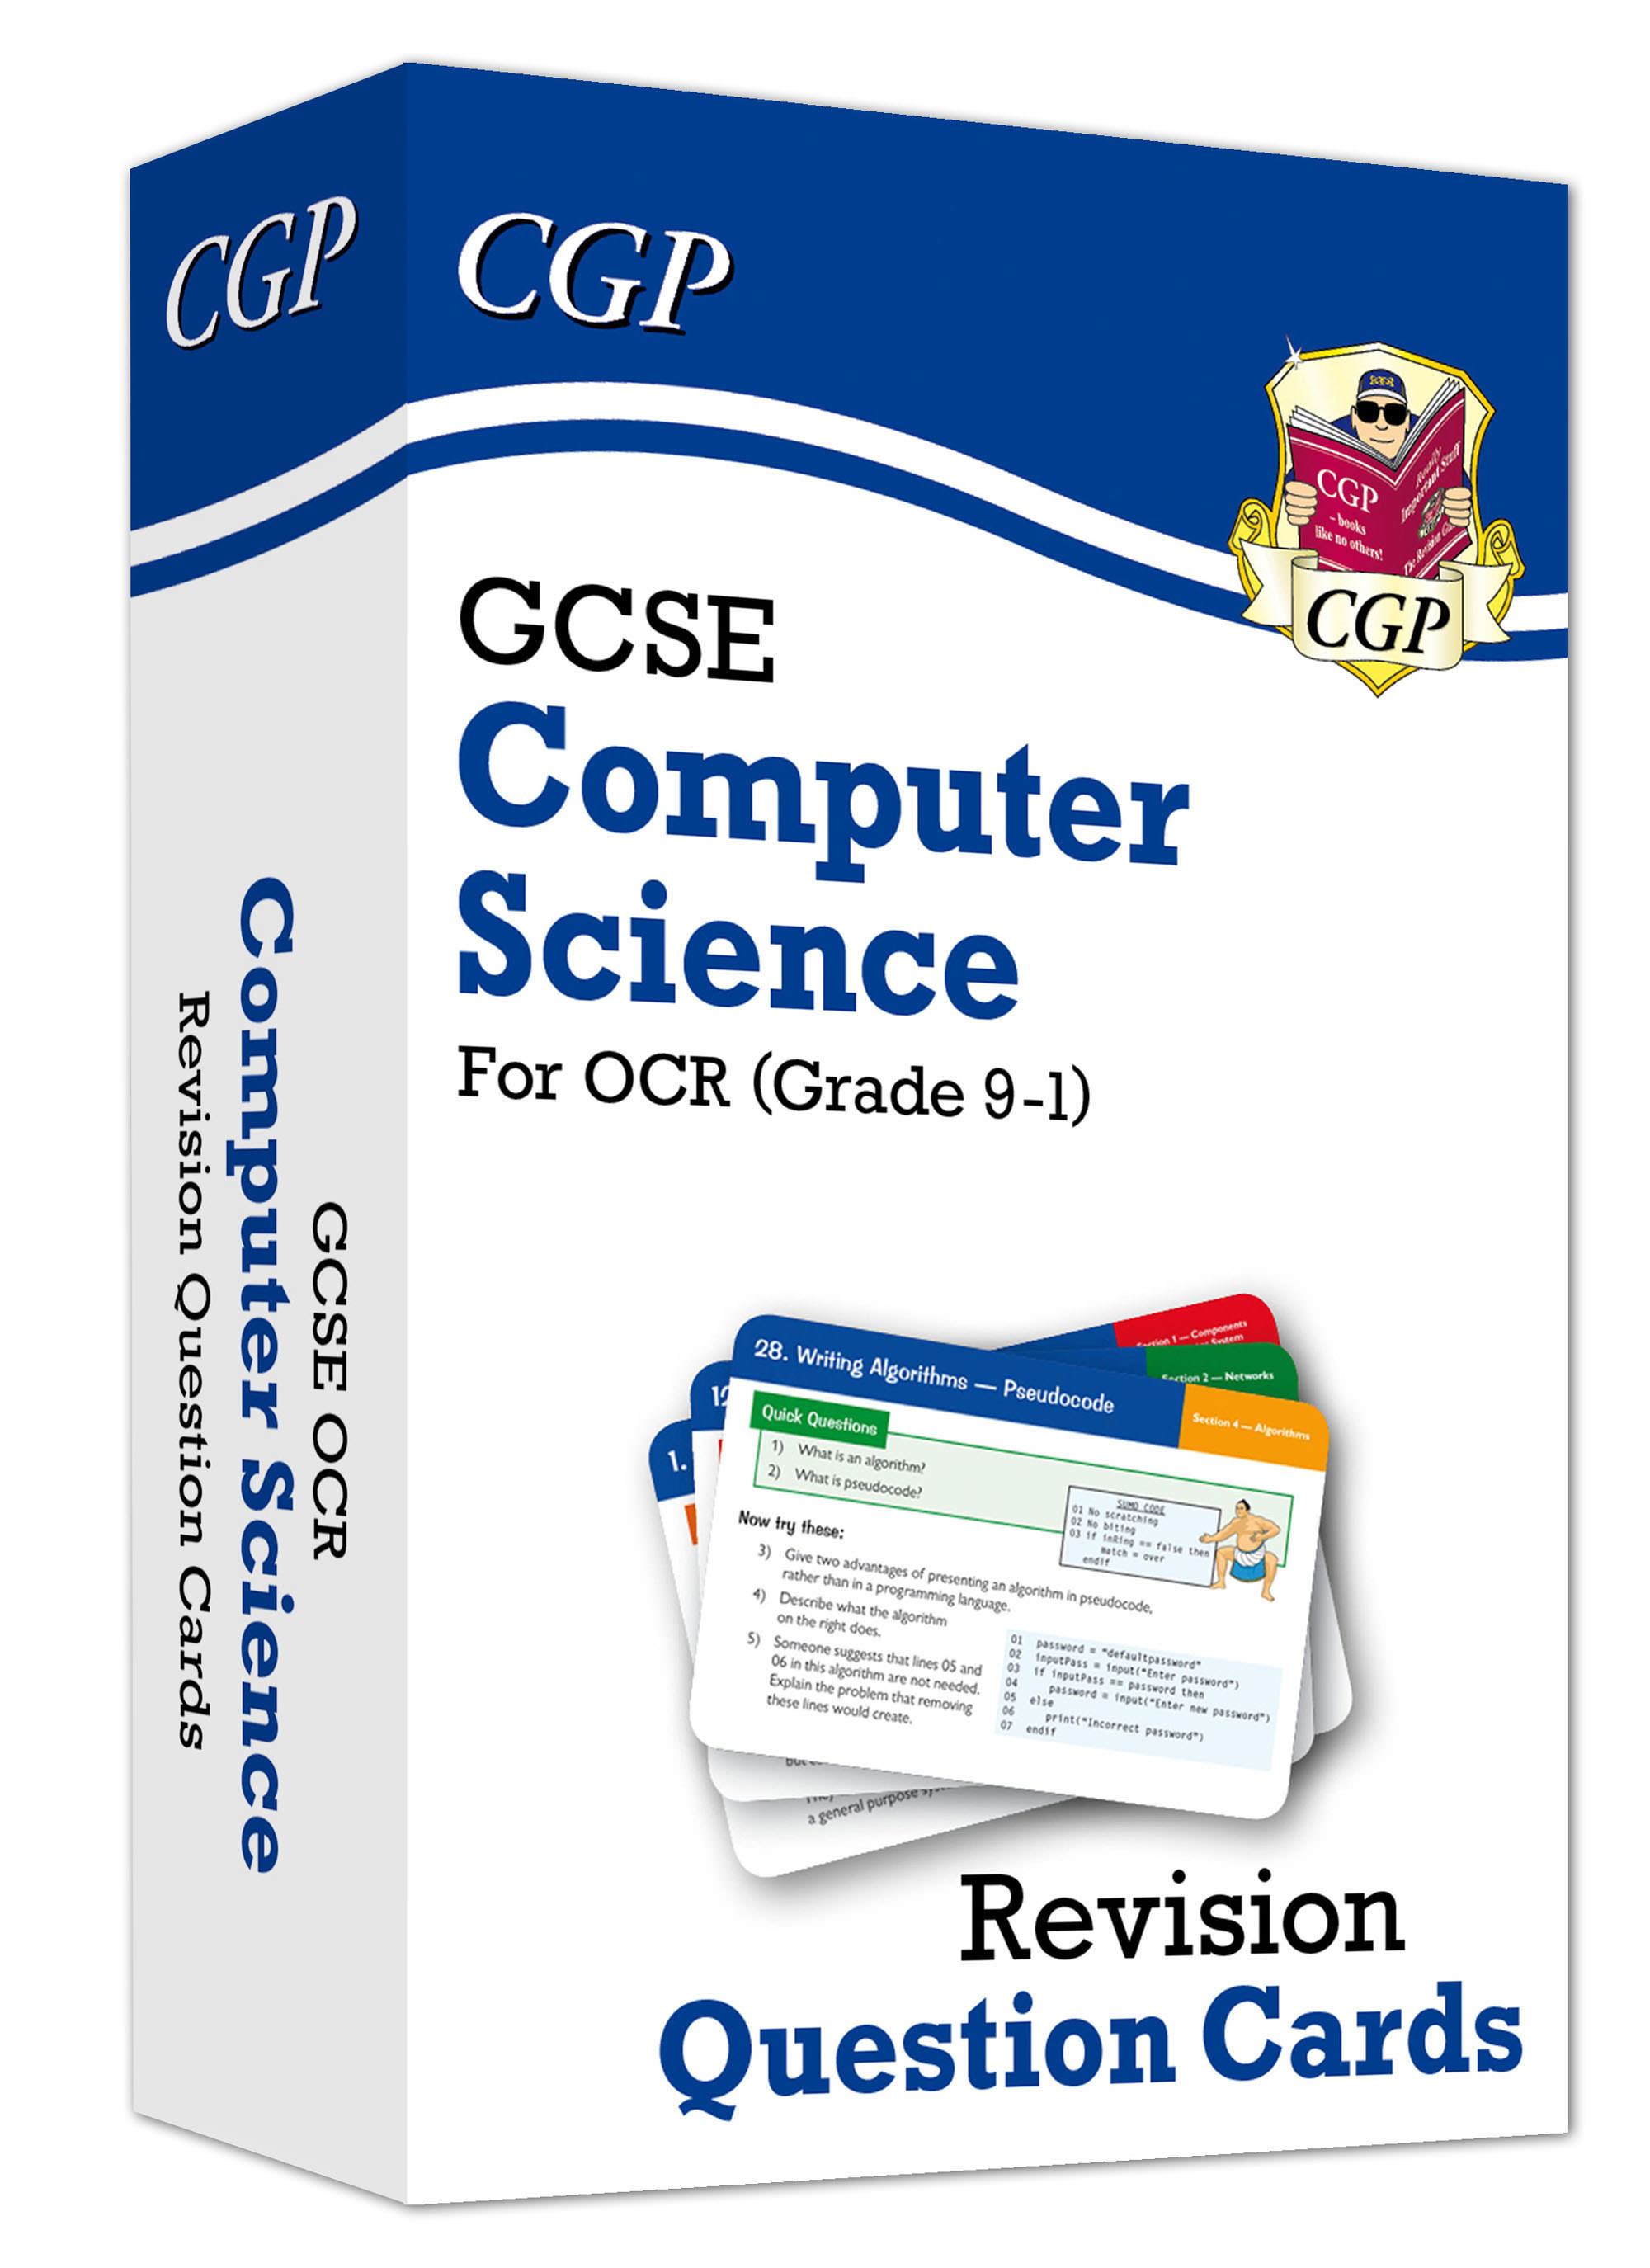 COF41 - New Grade 9-1 GCSE Computer Science OCR Revision Question Cards